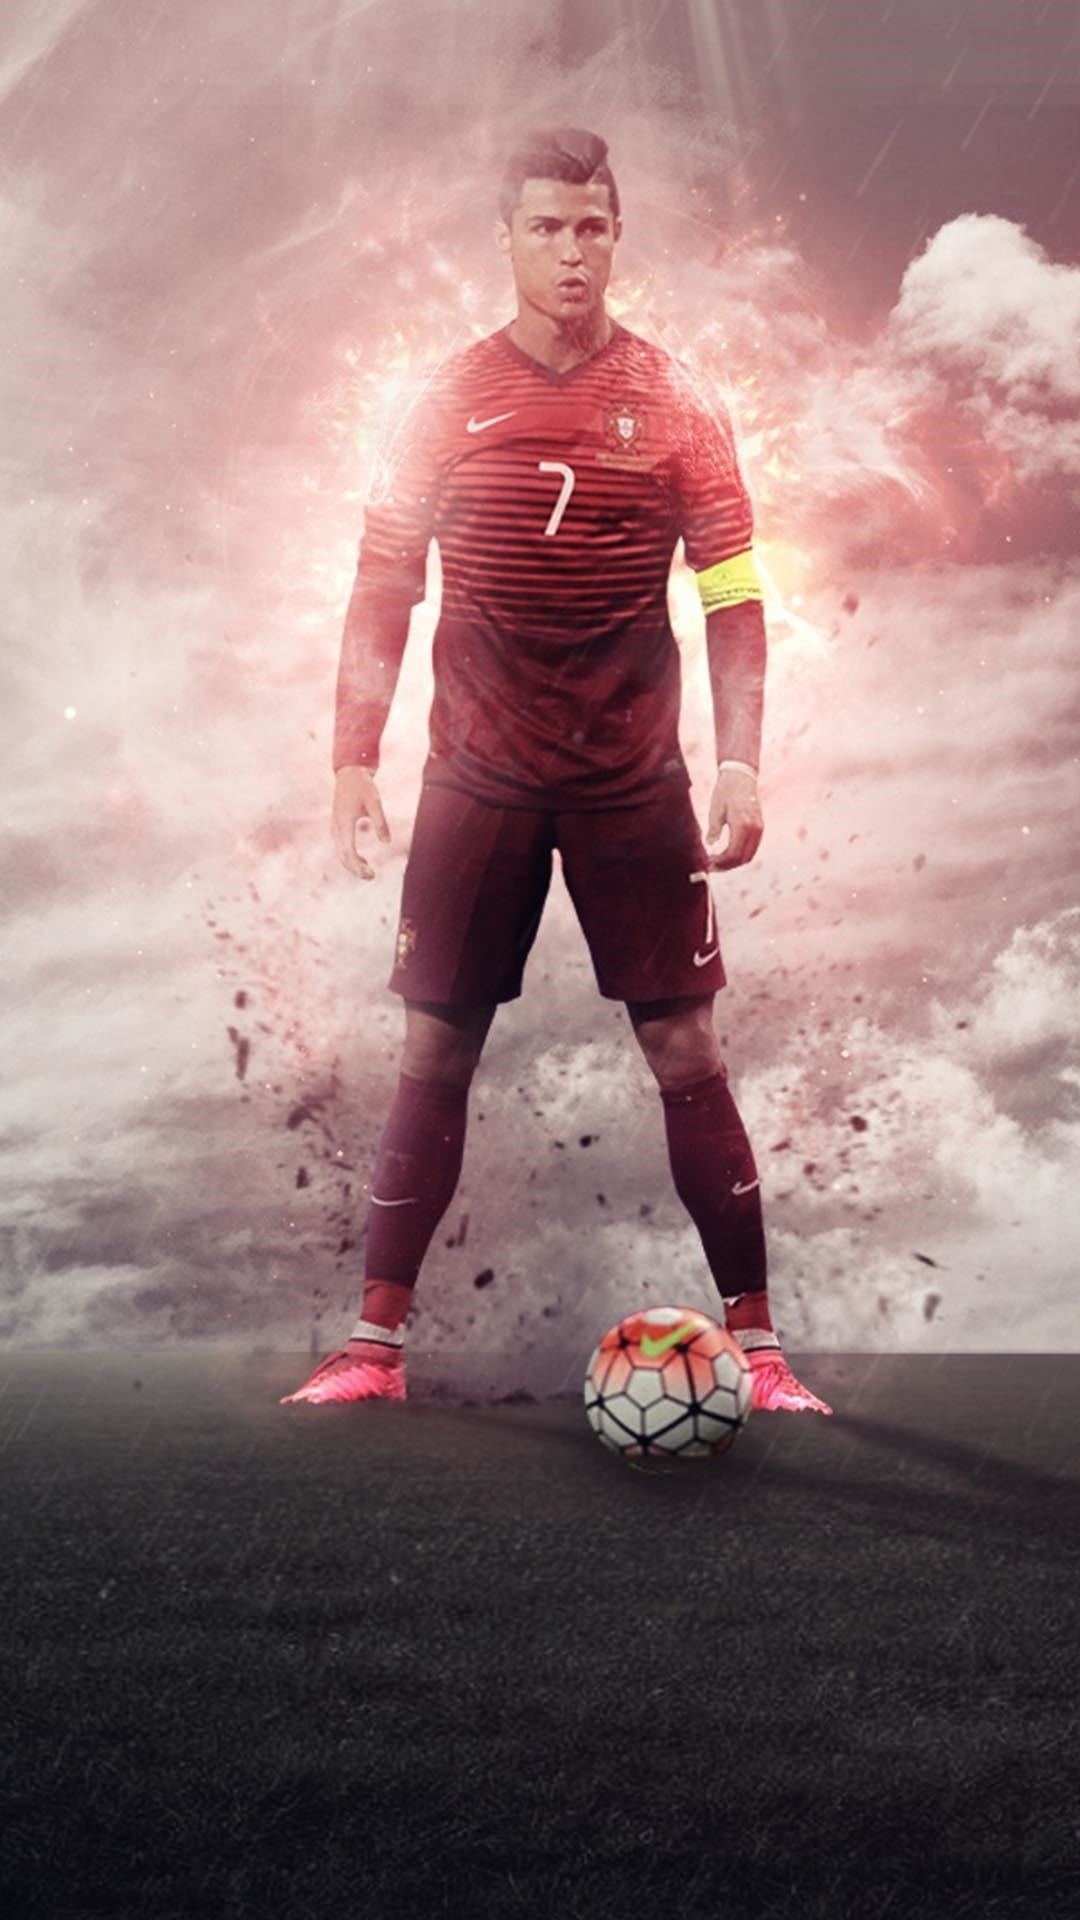 Cool Soccer phone background